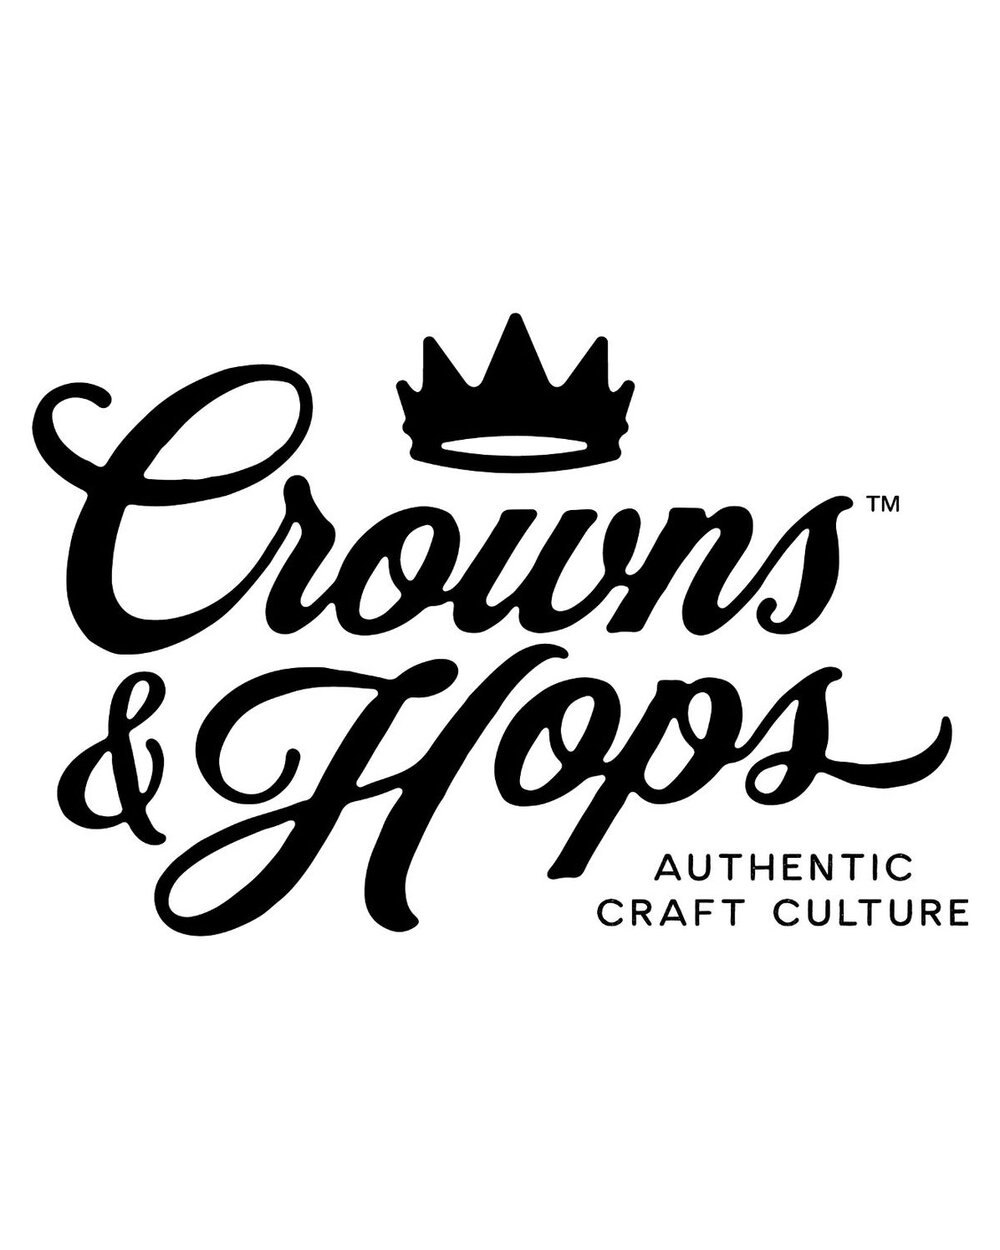 - Crowns and HopsInglewood's first black owned brewery. The beers can be found in Southern & Northern California and there is merchandise available for purchase online.